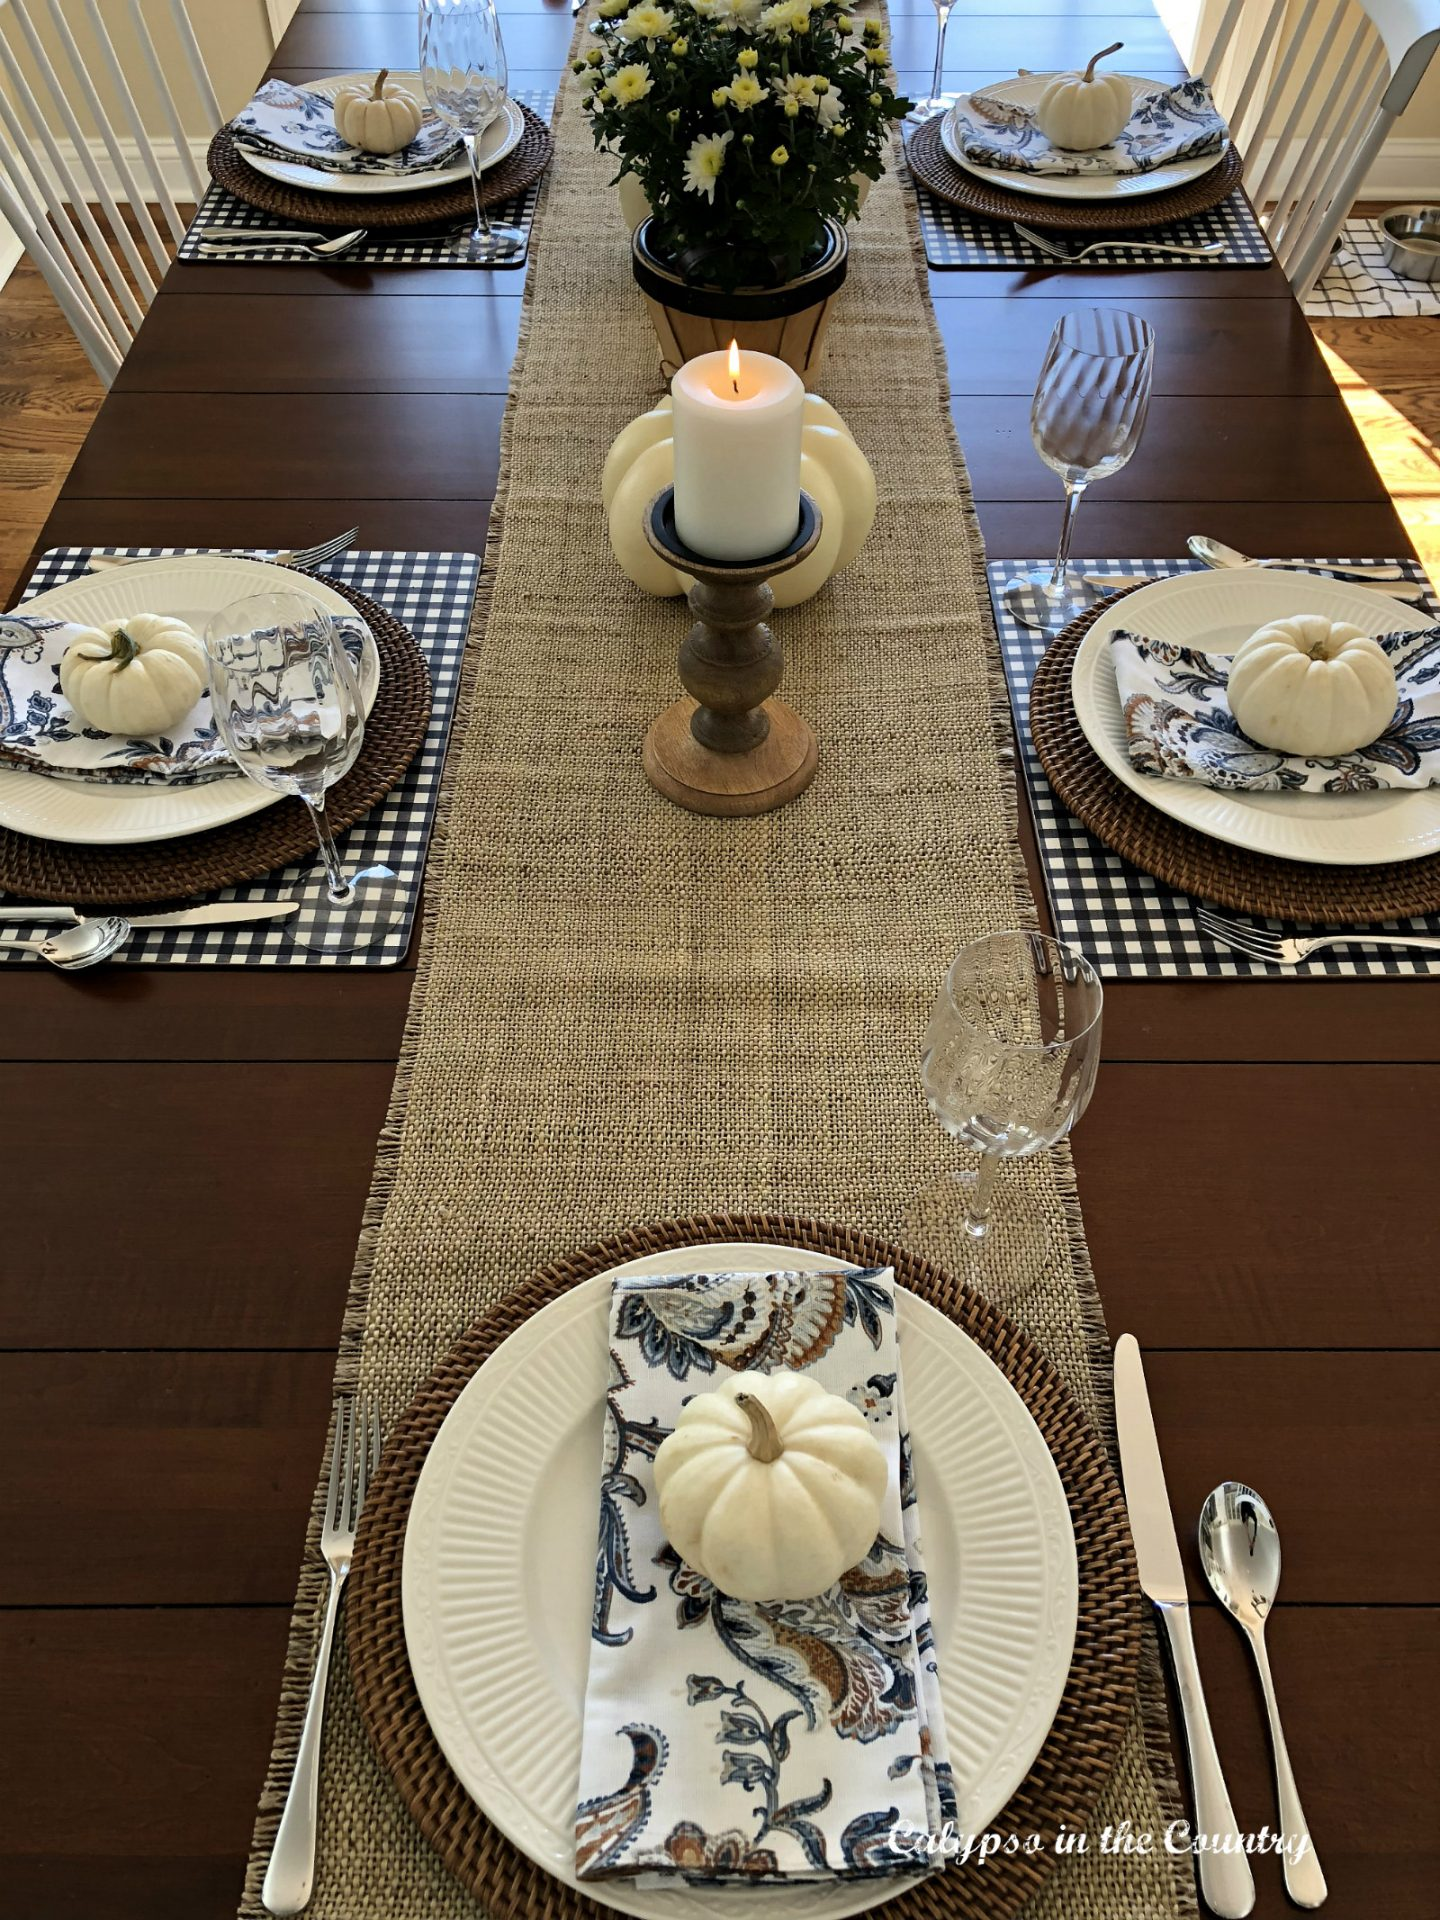 Top view of kitchen table with burlap runner